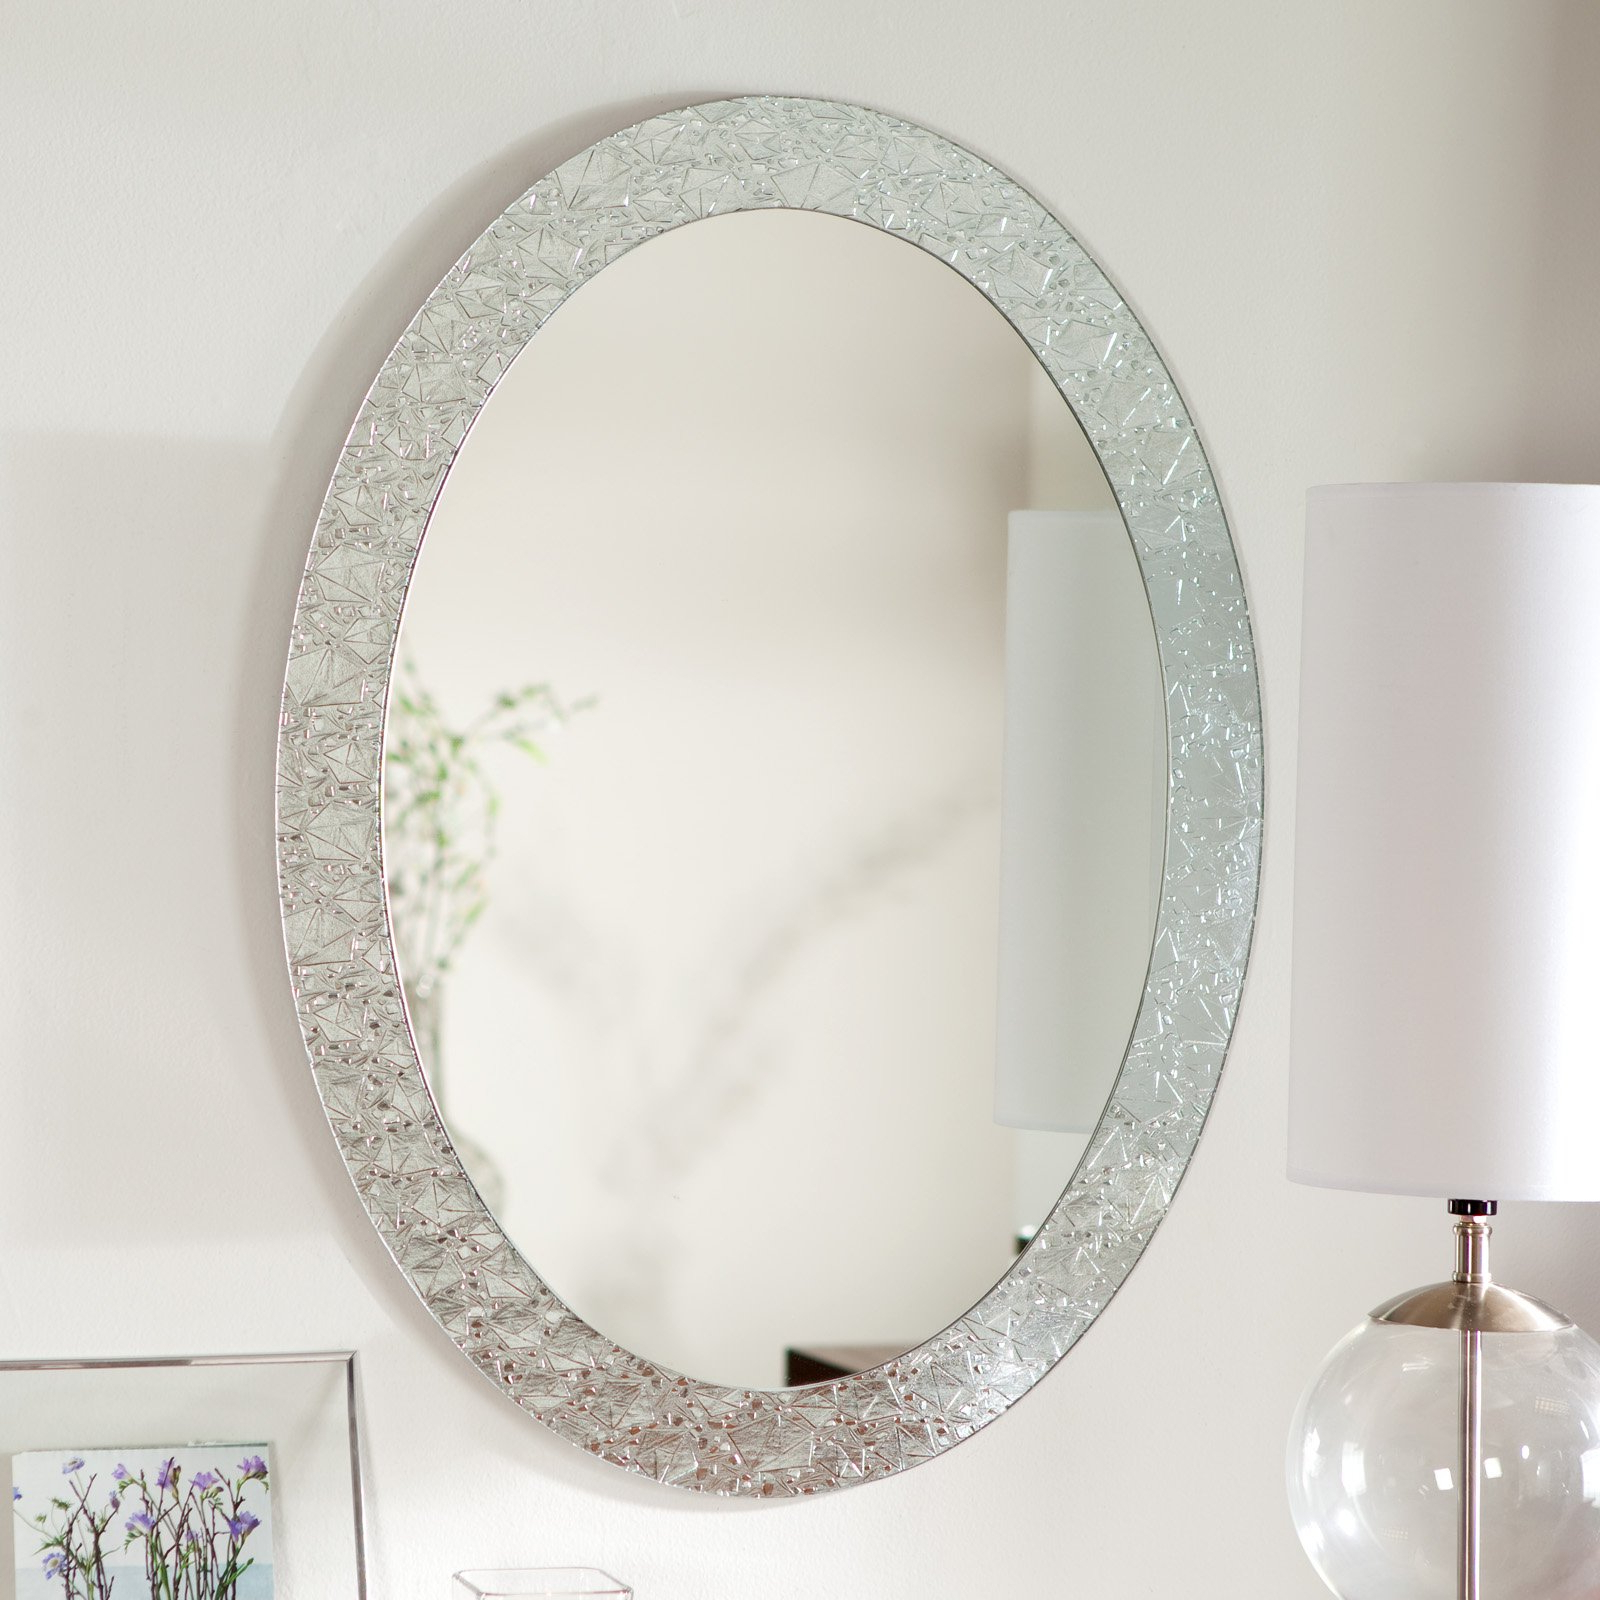 Decorative Wall Mirrors For Bathrooms Throughout Latest 30 Most Outstanding Beautiful Oval Bathroom Mirrors For House Decor (View 15 of 20)